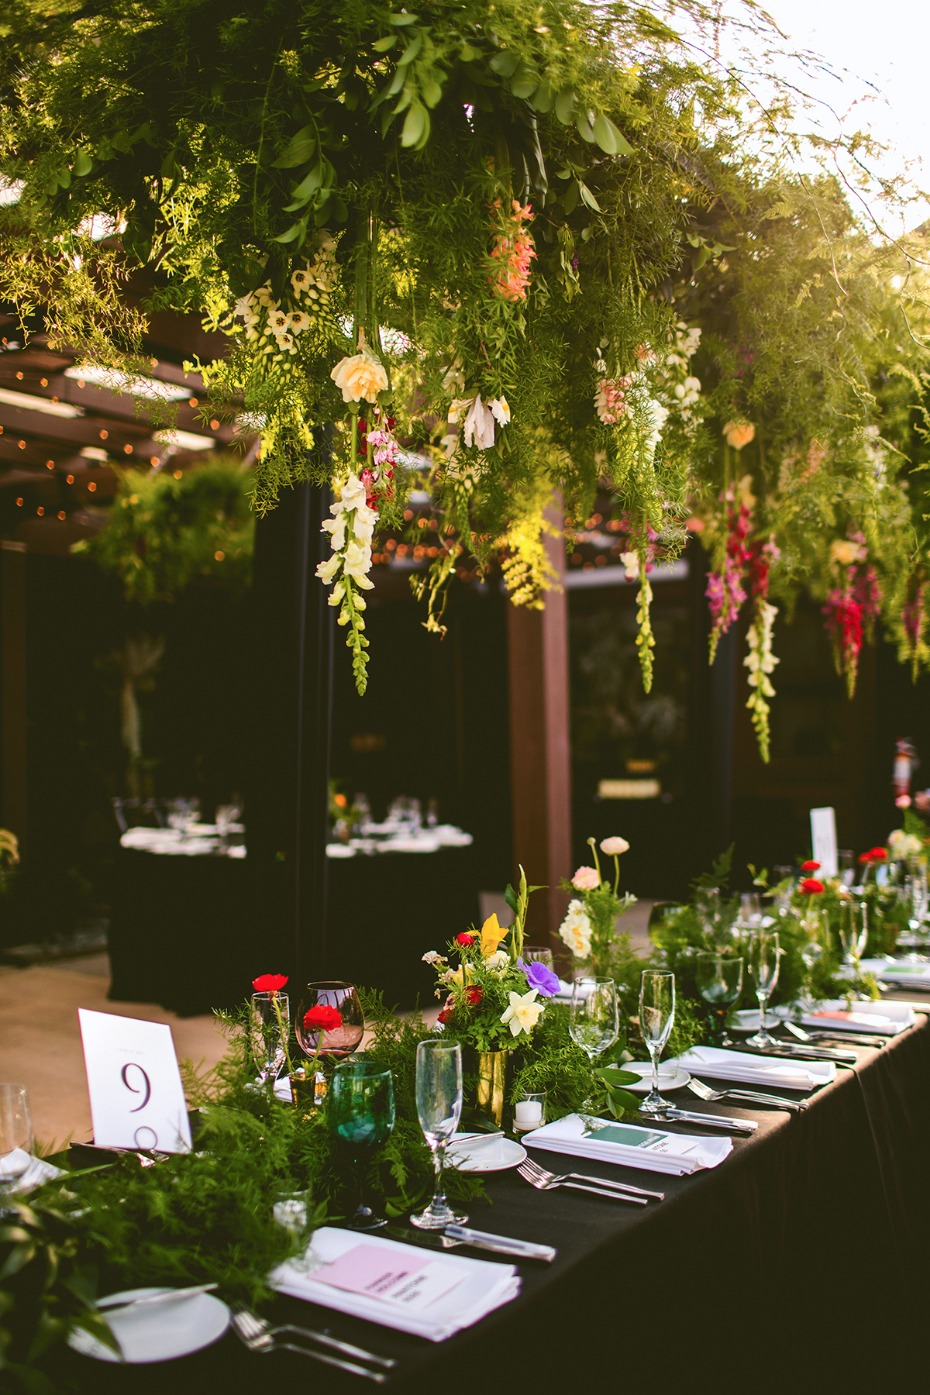 Greenery decor with hanging florals